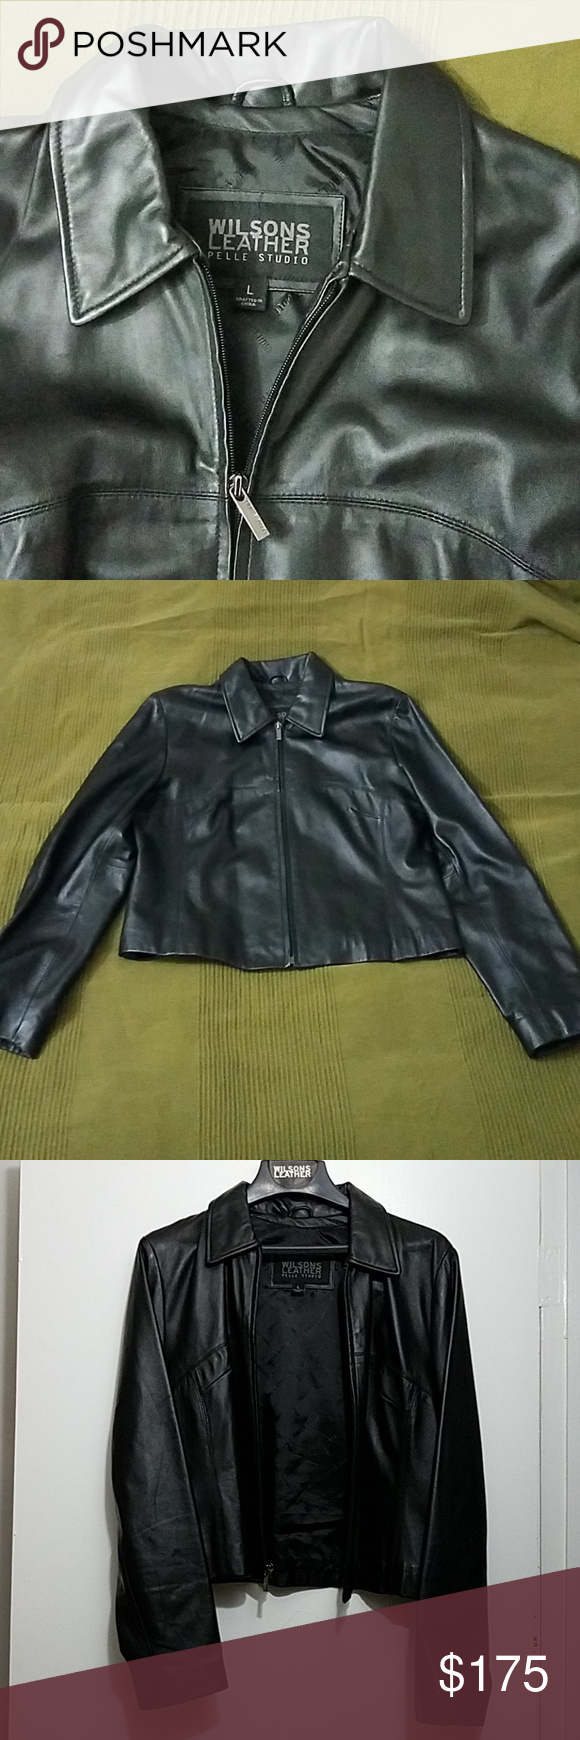 New Wilsons Leather Pelle Studio Jacket Wilsons leather